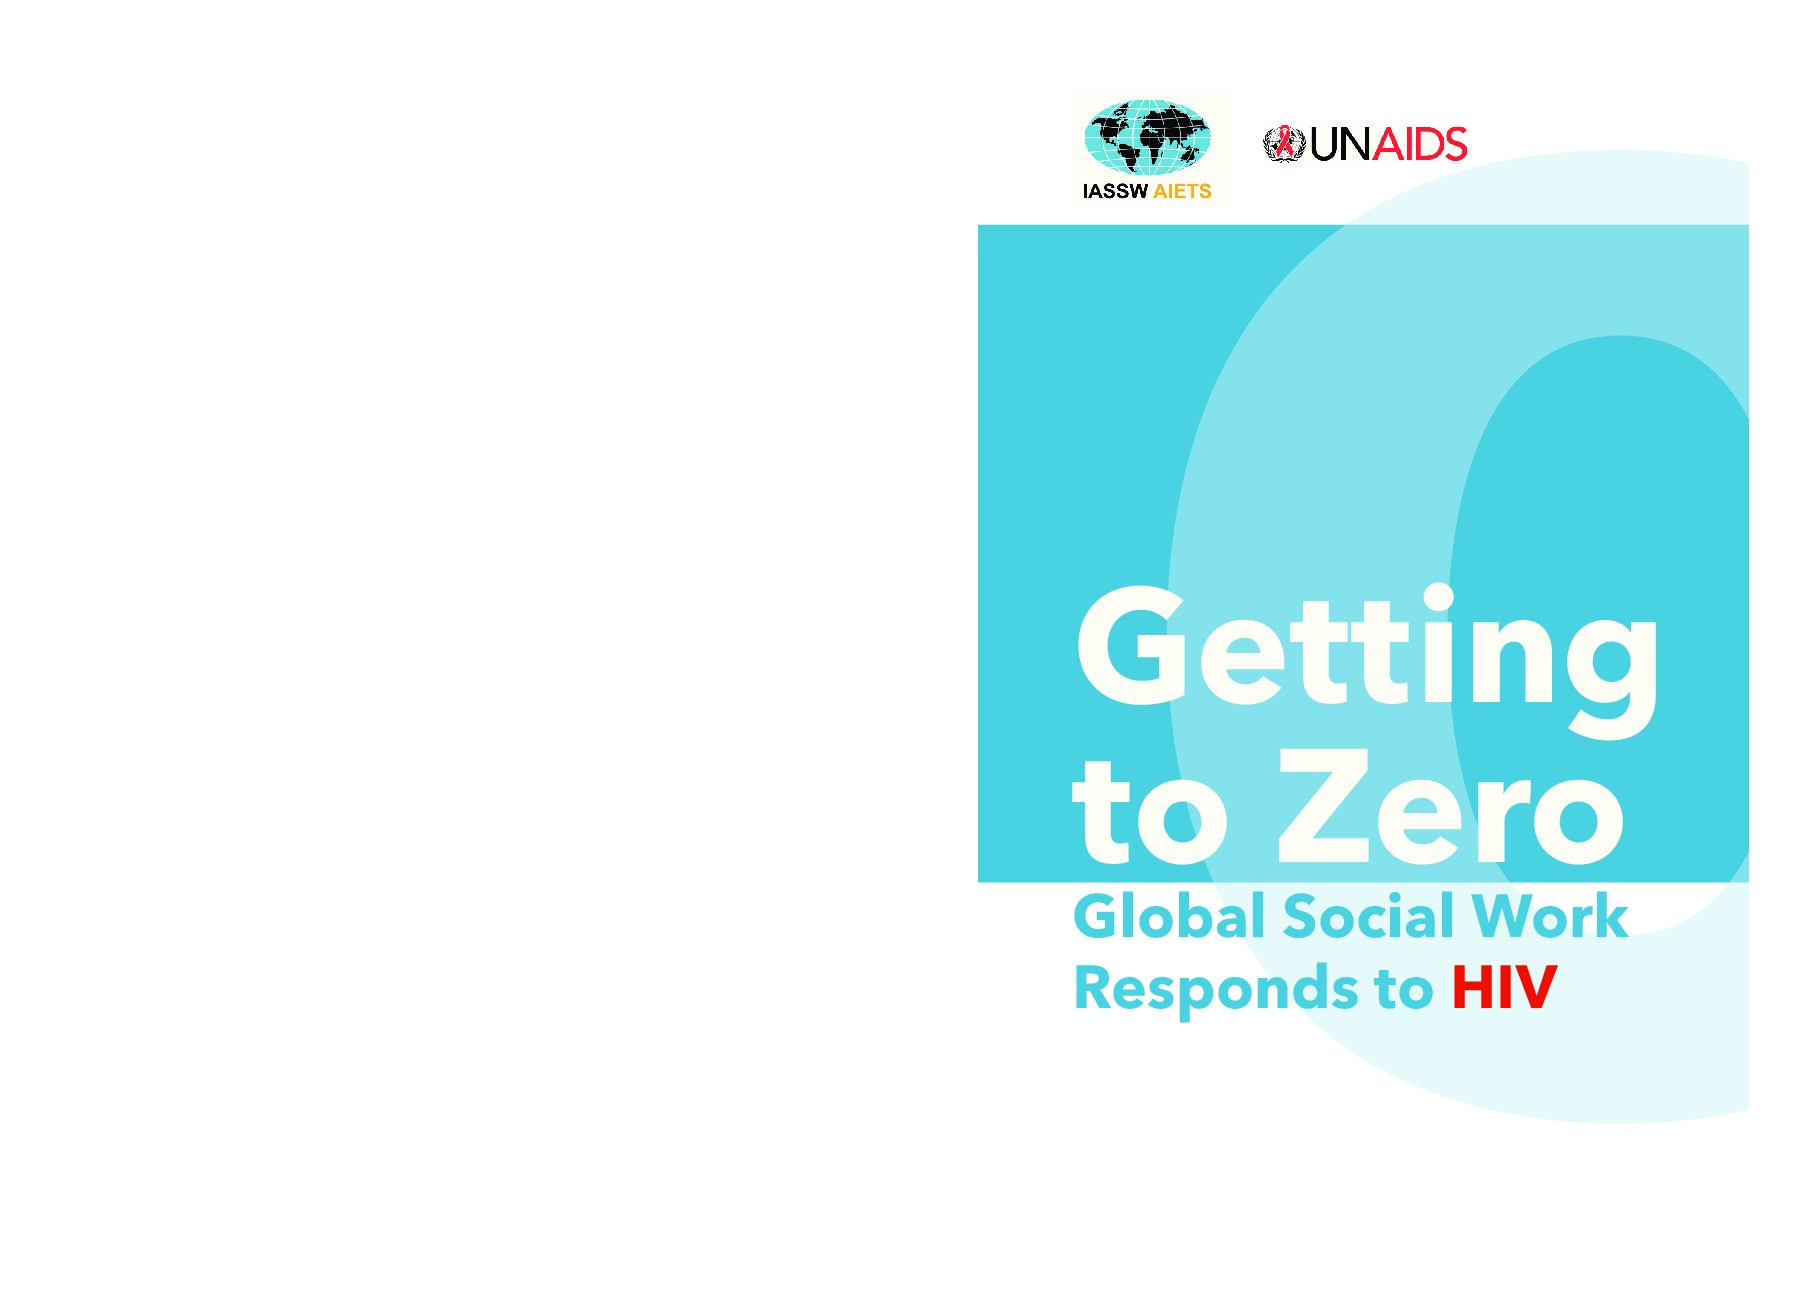 Getting to zero — global social work responds to HIV